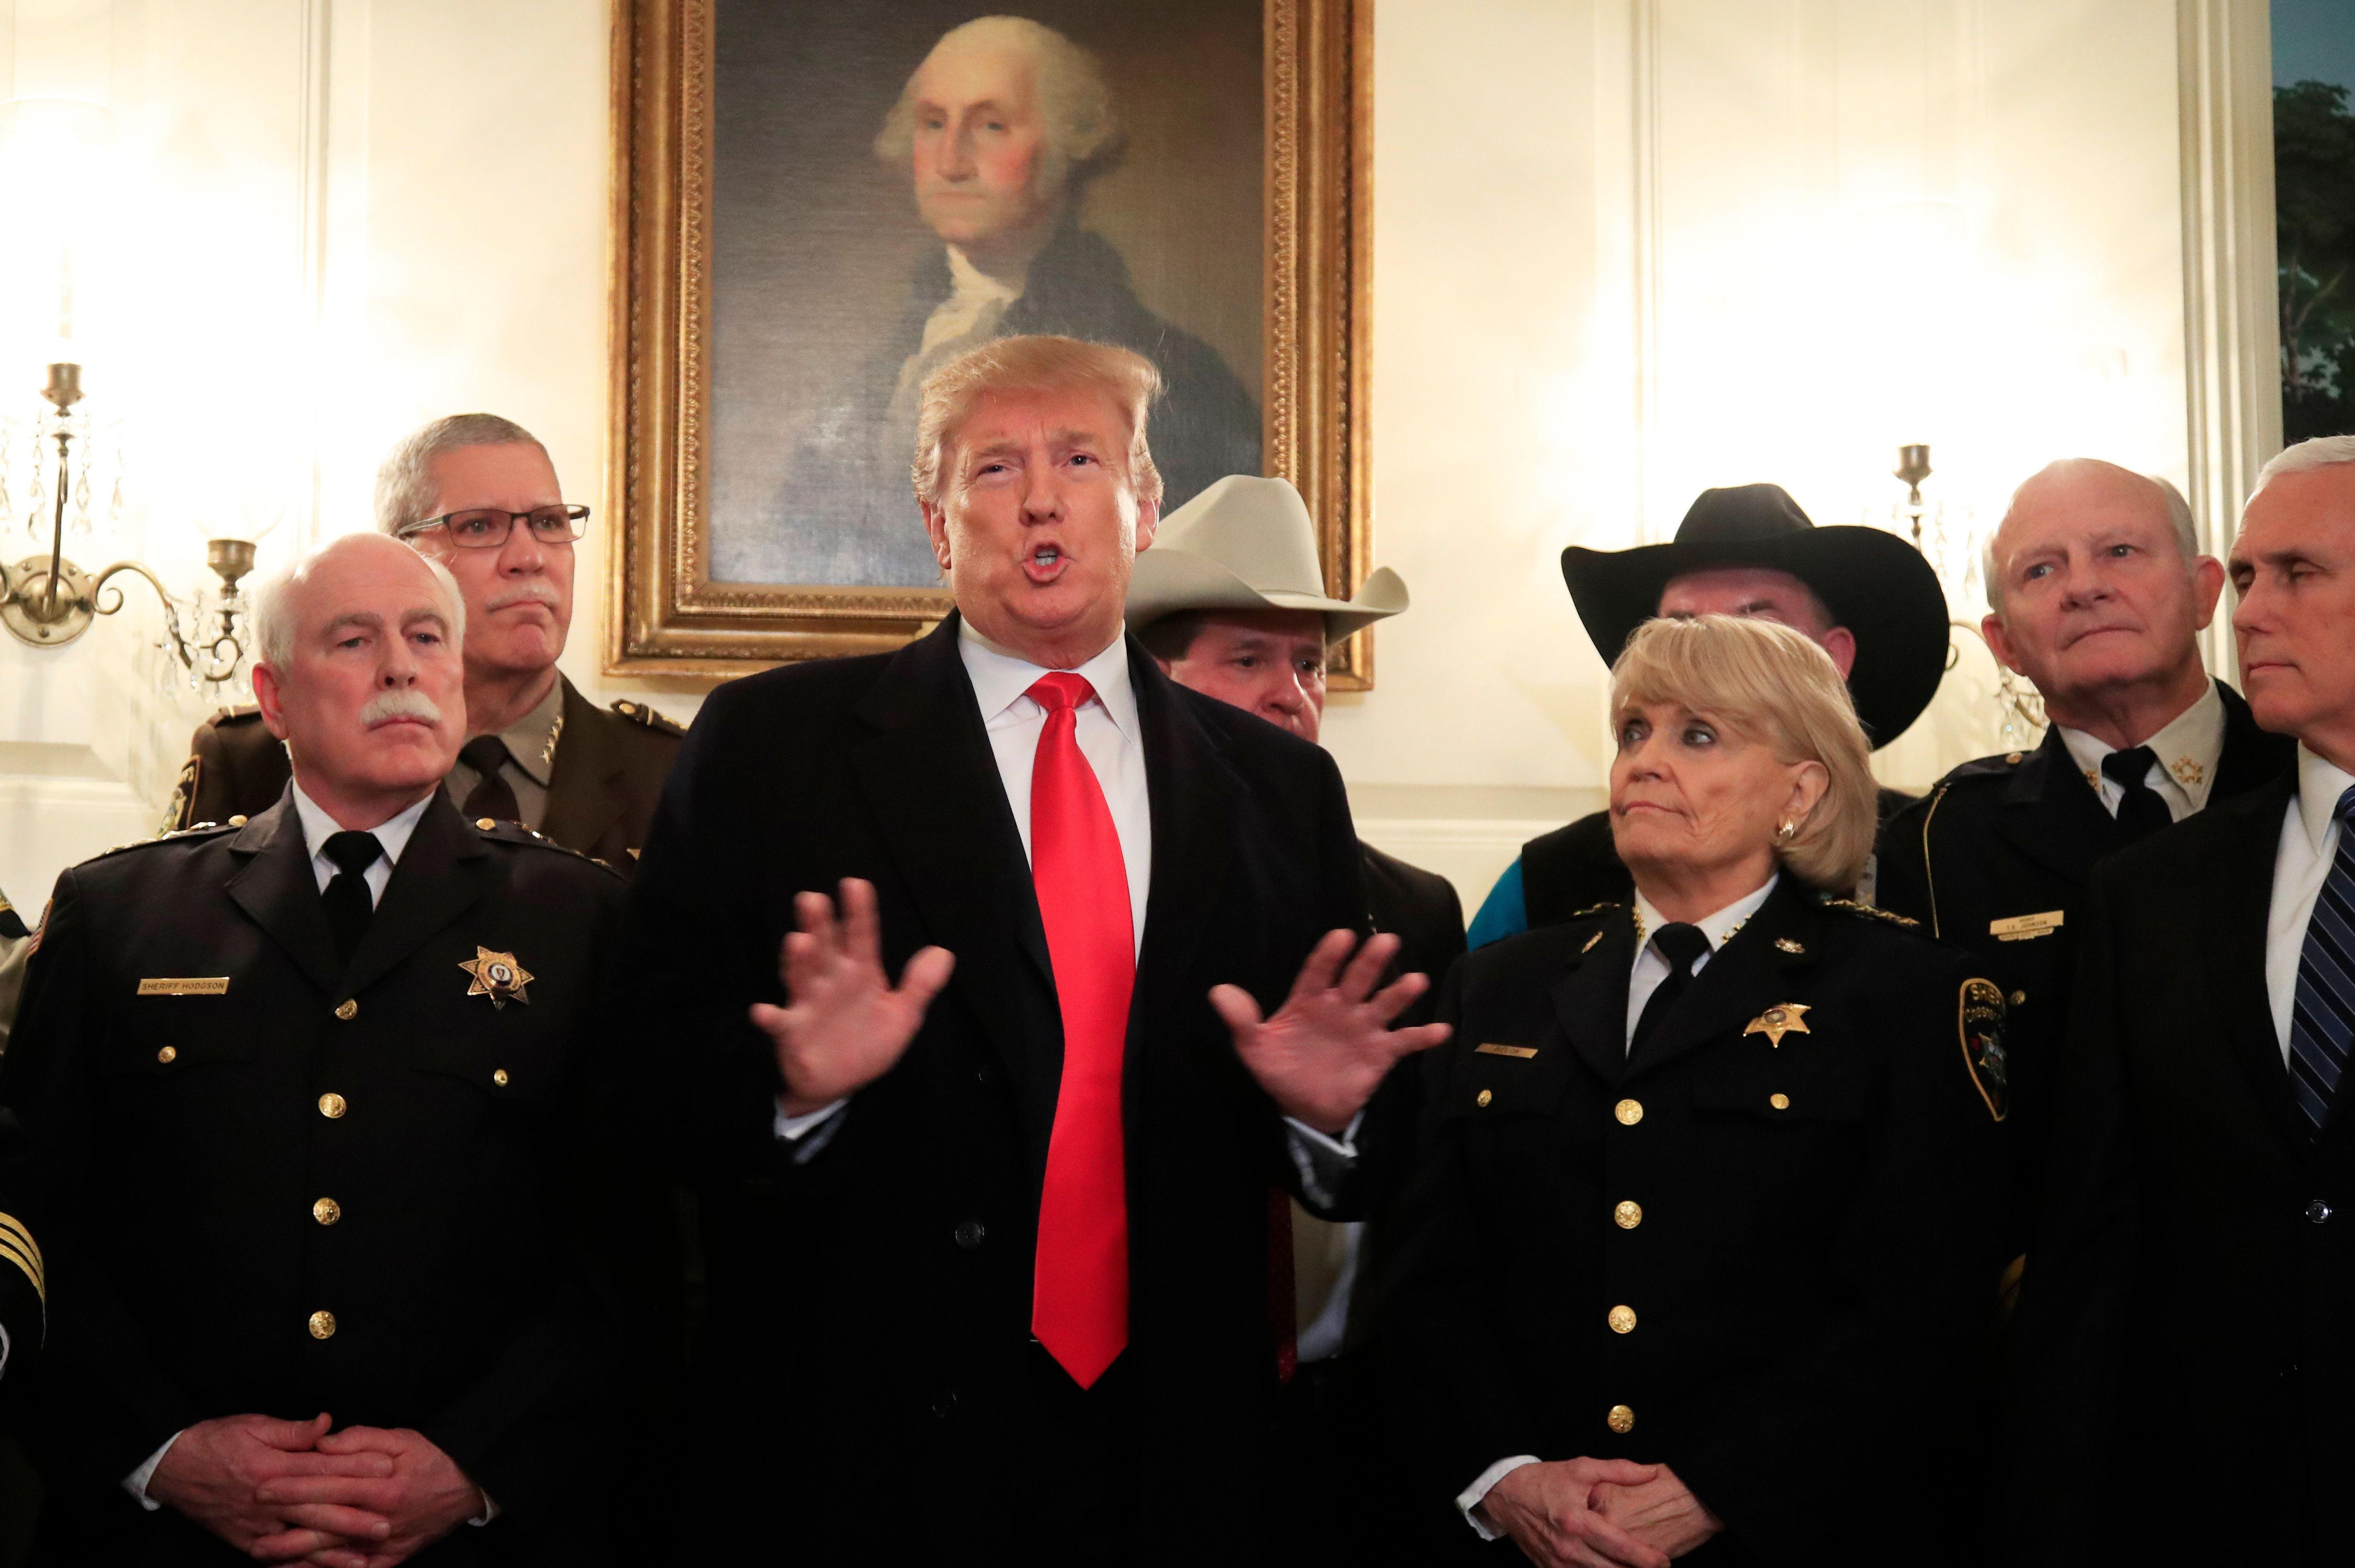 President Donald Trump met with a group of sheriffs from around the country before traveling to El Paso, Texas for a campaign rally on Monday.